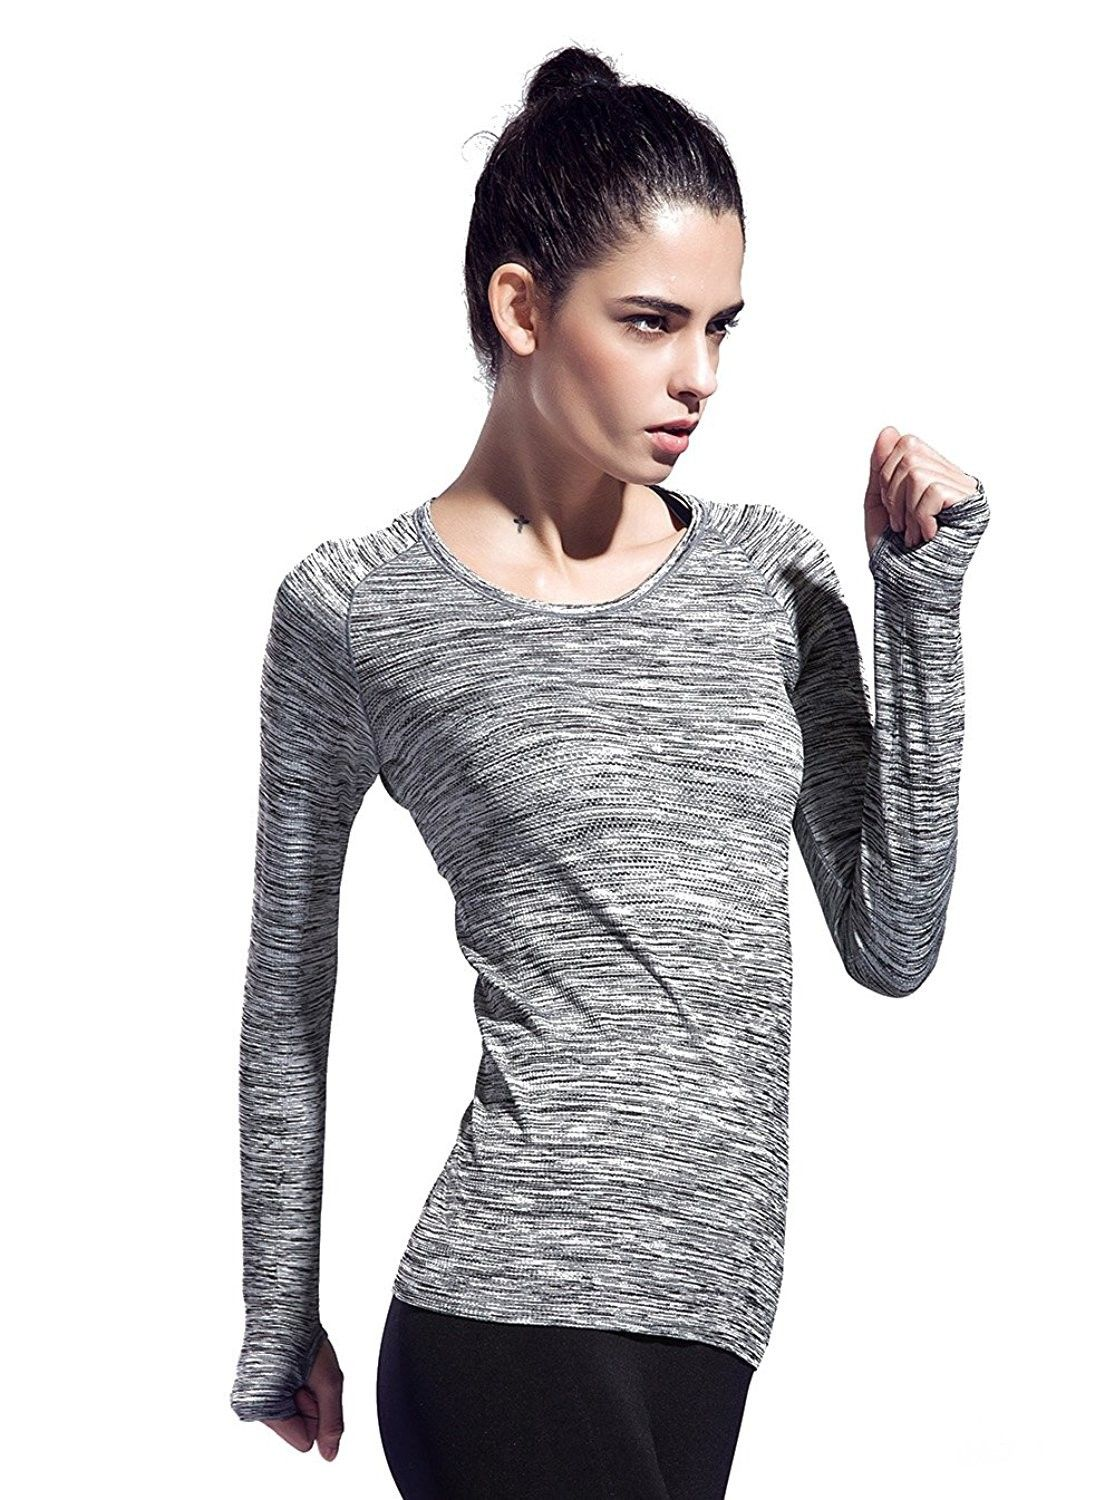 4712e628 Women's Clothing, Active, Active Shirts & Tees, Women's Space Dye Long  Sleeve Quick Dry Crew Neck Running Shirt for Workout Hiking Yoga Gym Sport  - Gray ...